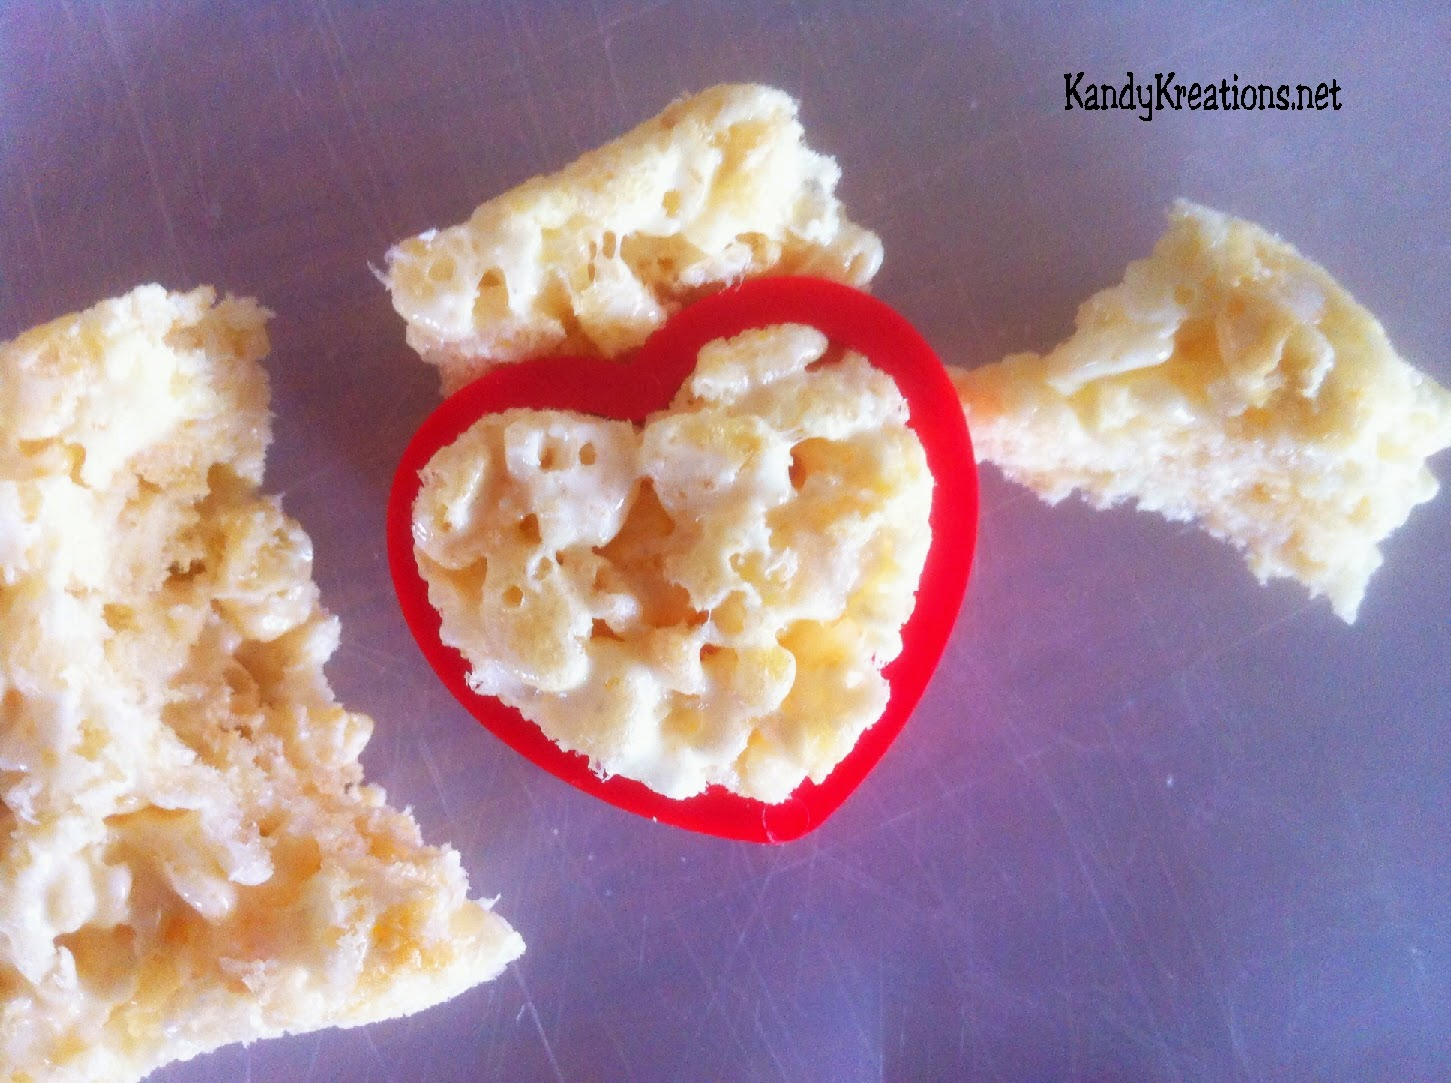 Use a cookie cutter to cut out hearts